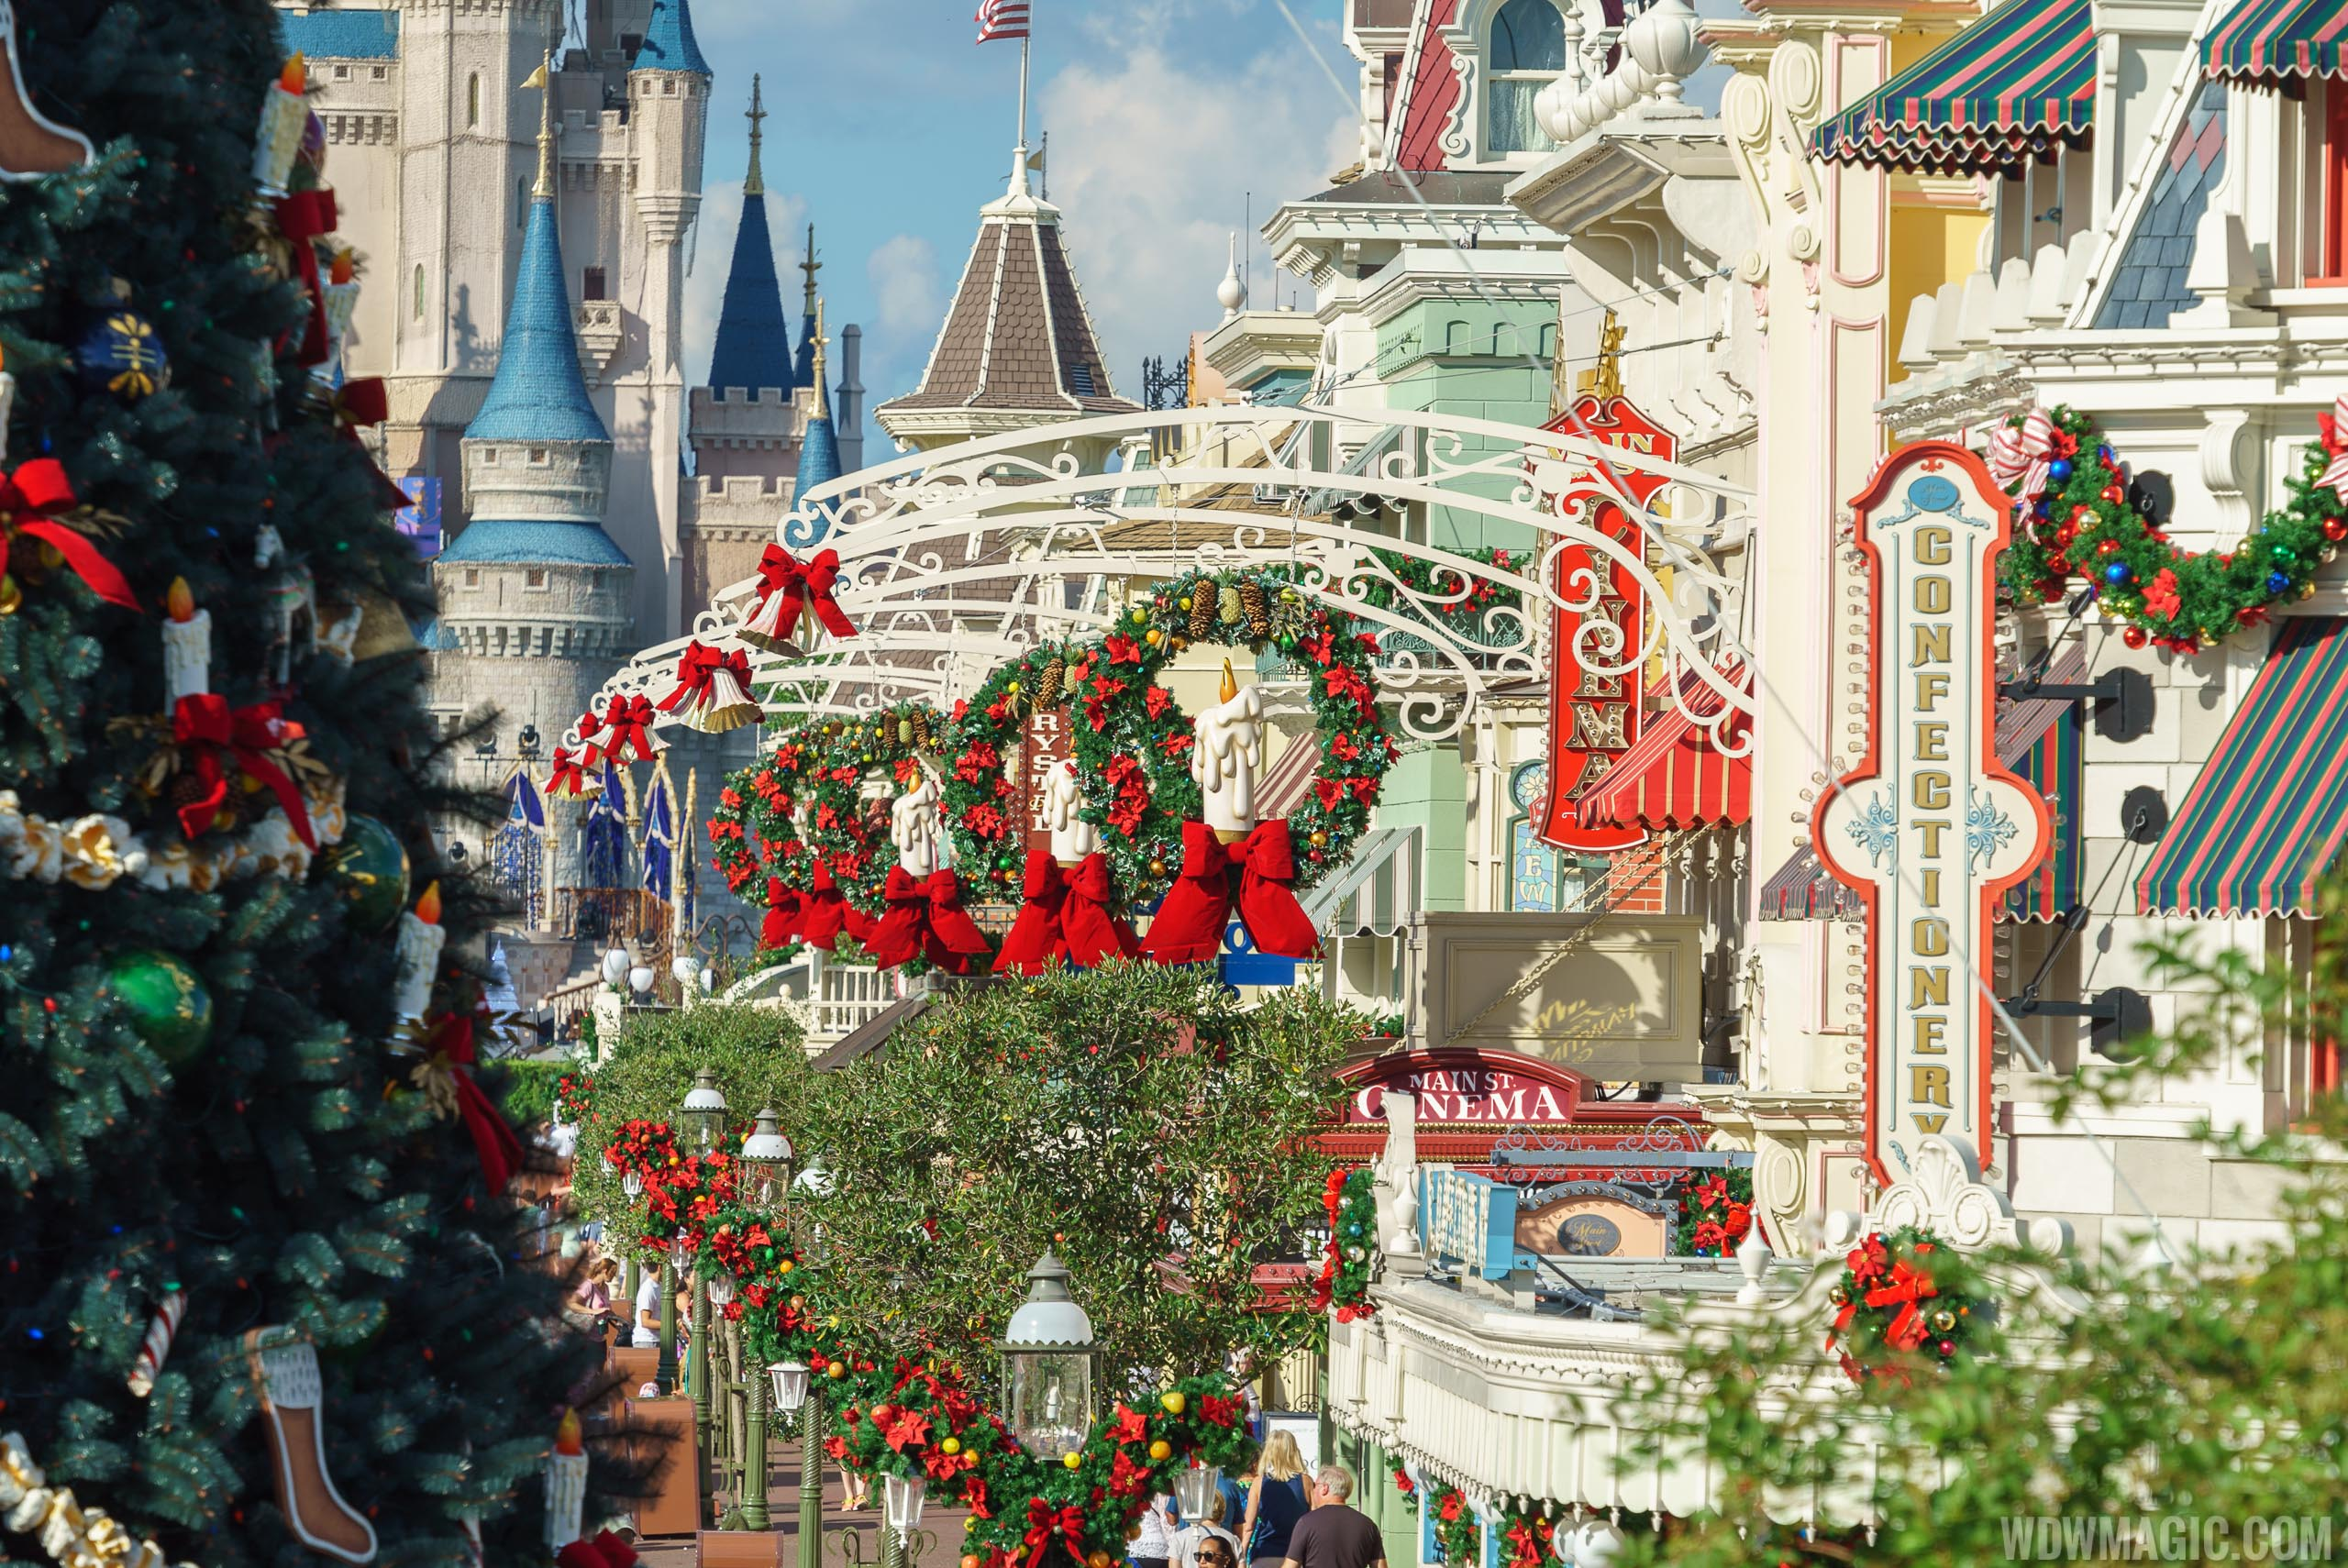 photos the magic kingdoms 2017 christmas holiday decorations - Christmas Decorations For 2017